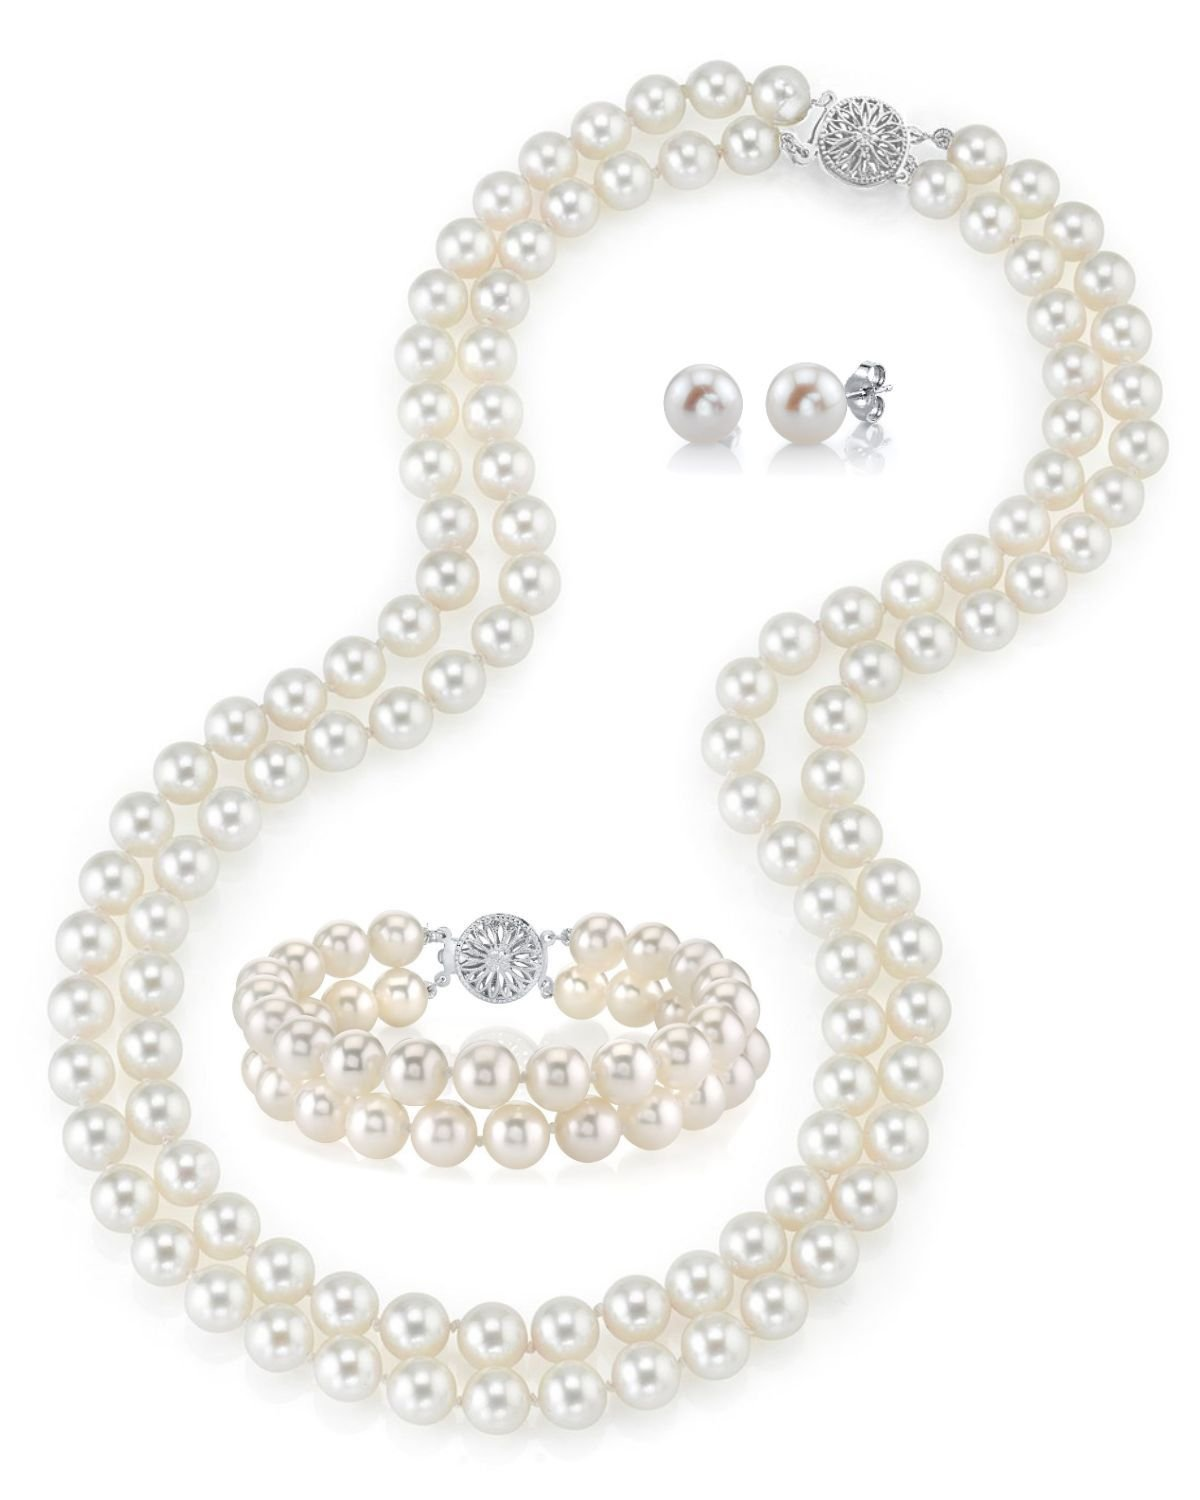 THE PEARL SOURCE 14K Gold 6.5-7mm AAAA Quality Round White Freshwater Cultured Pearl Double Strand Necklace, Bracelet & Earrings Set in 17'' Princess Length for Women